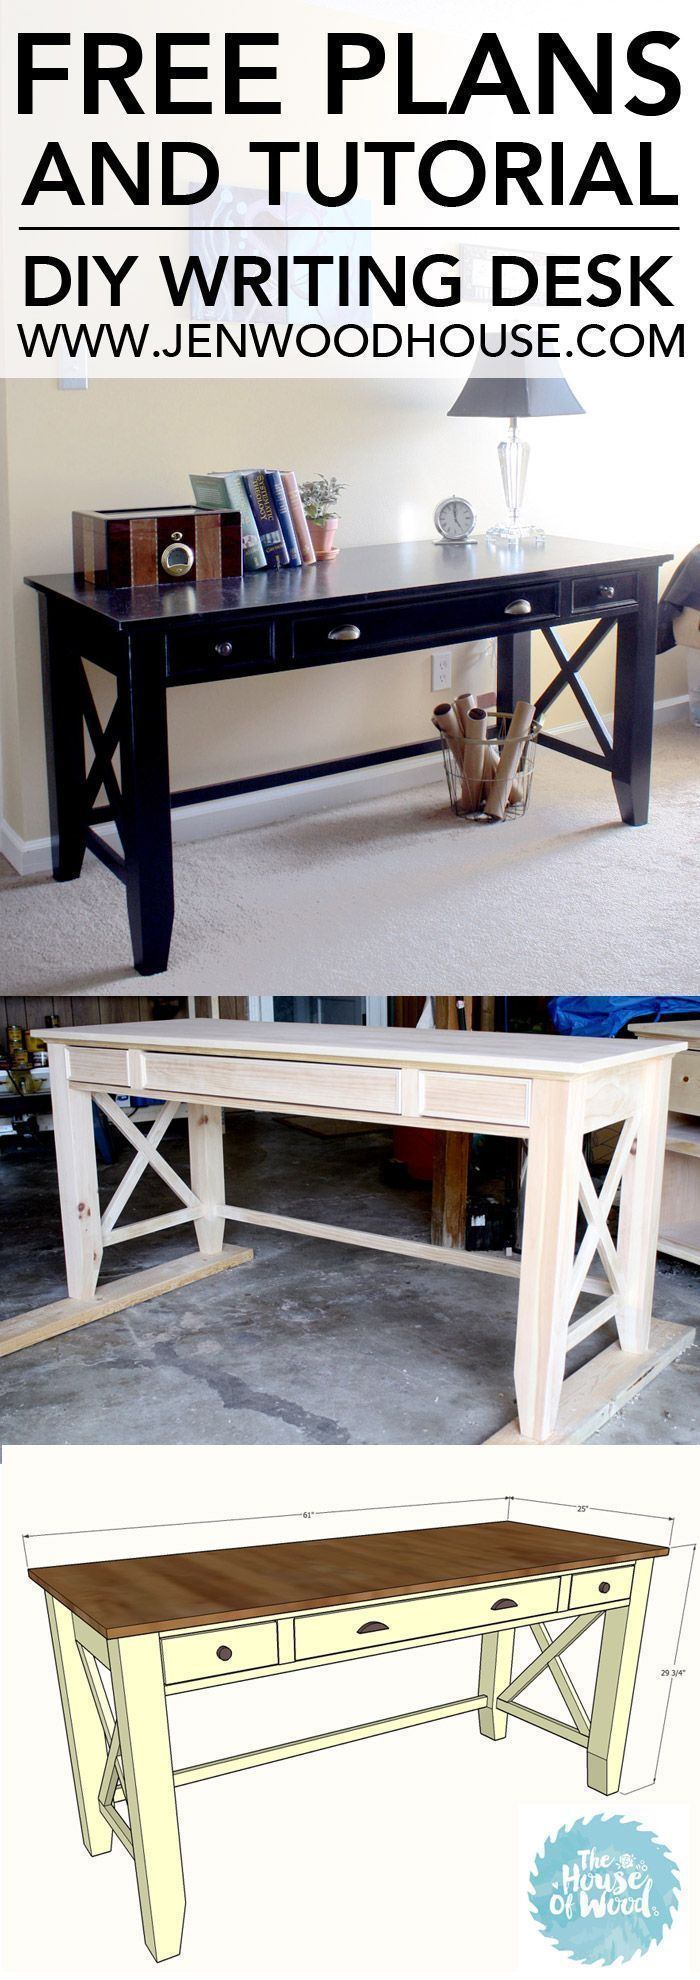 Table success do it yourself home projects from ana white diy 85 - Diy Writing Desk